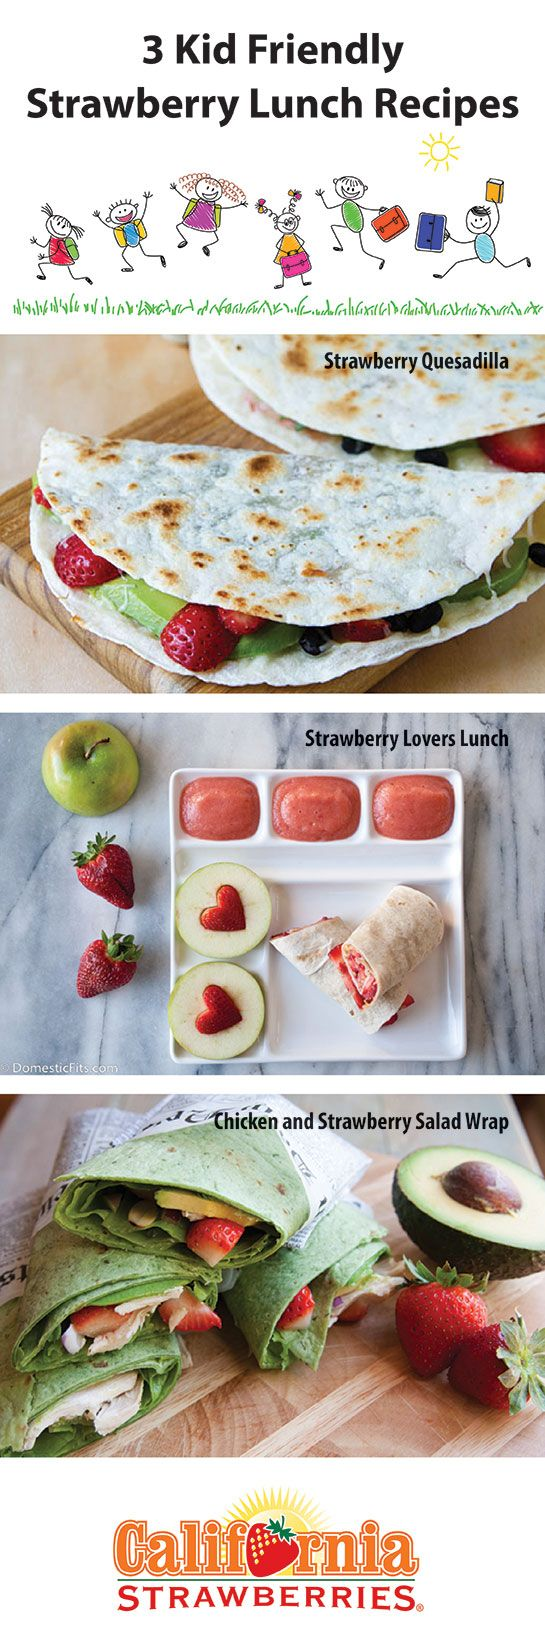 3 Unique and Easy Strawberry Lunch Recipes